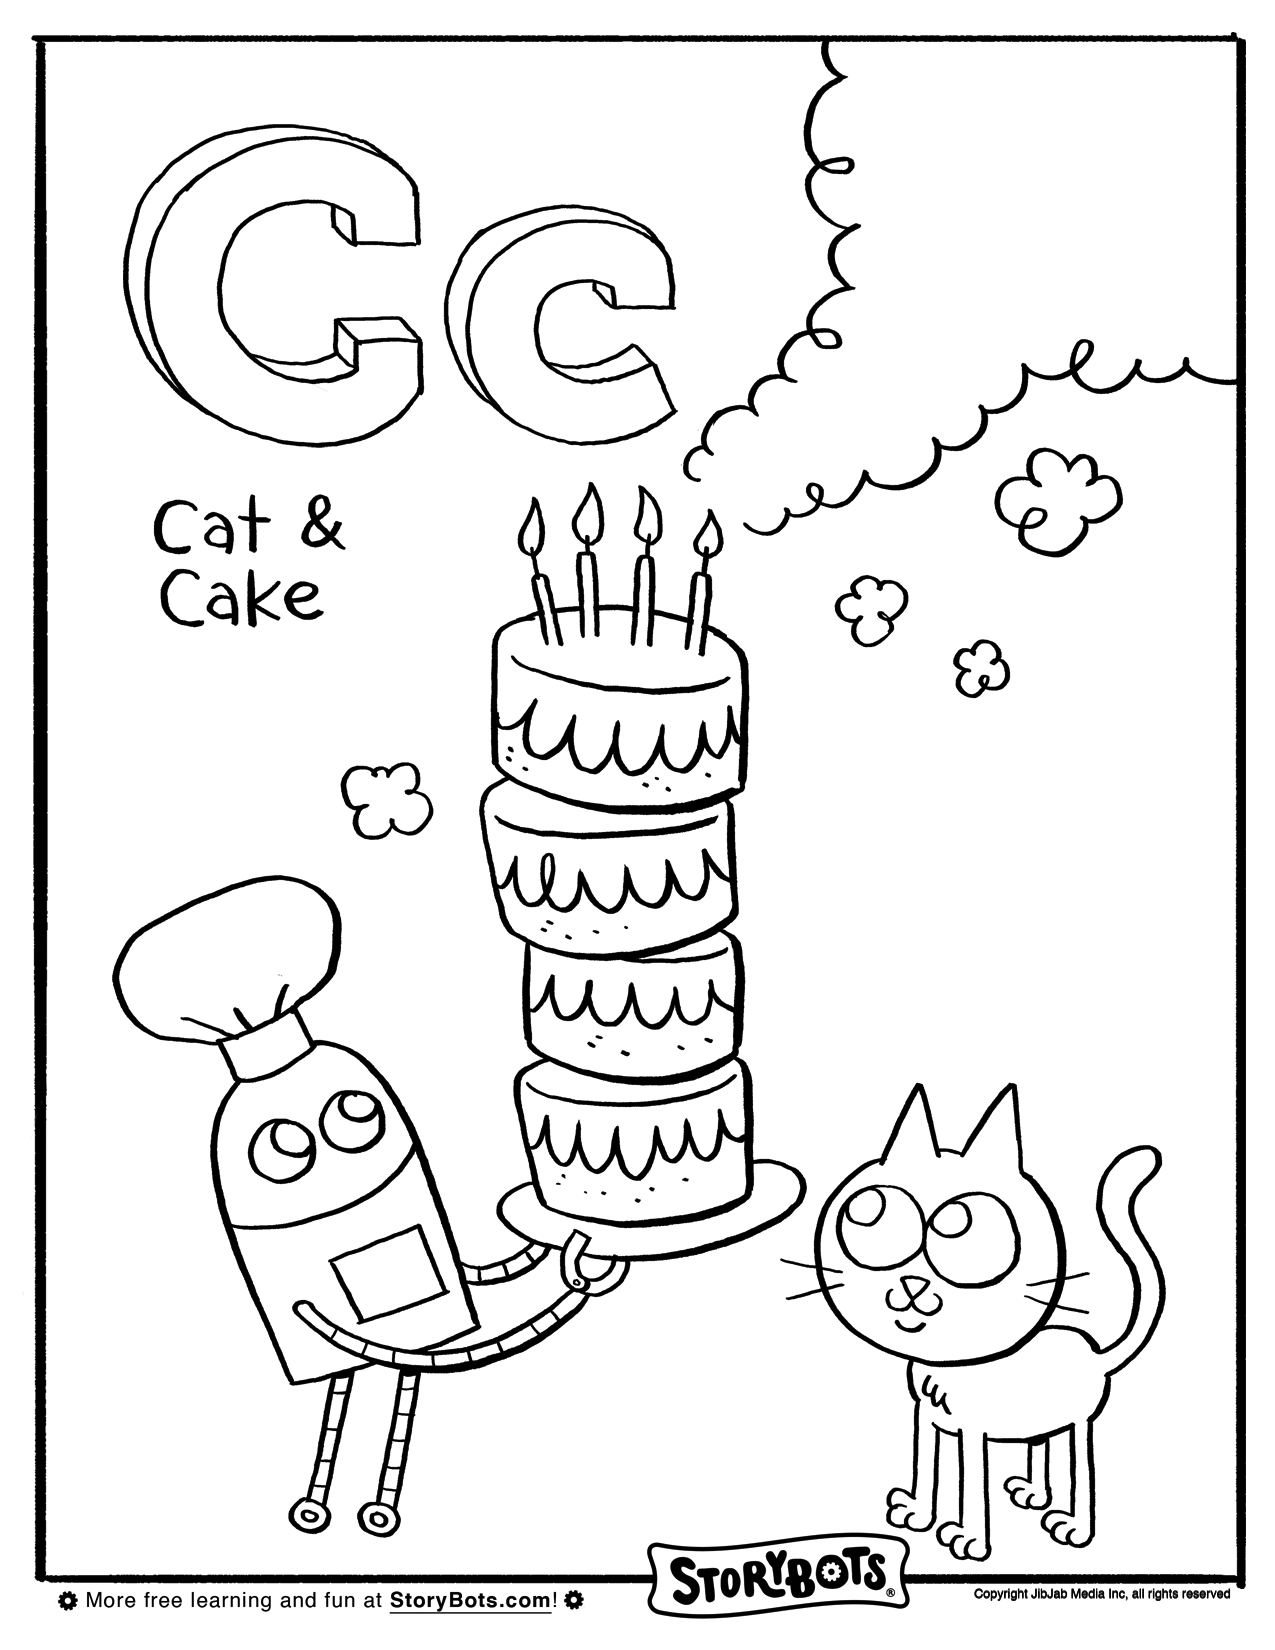 Letter C Coloring Sheet ABC Activity Sheets StoryBots